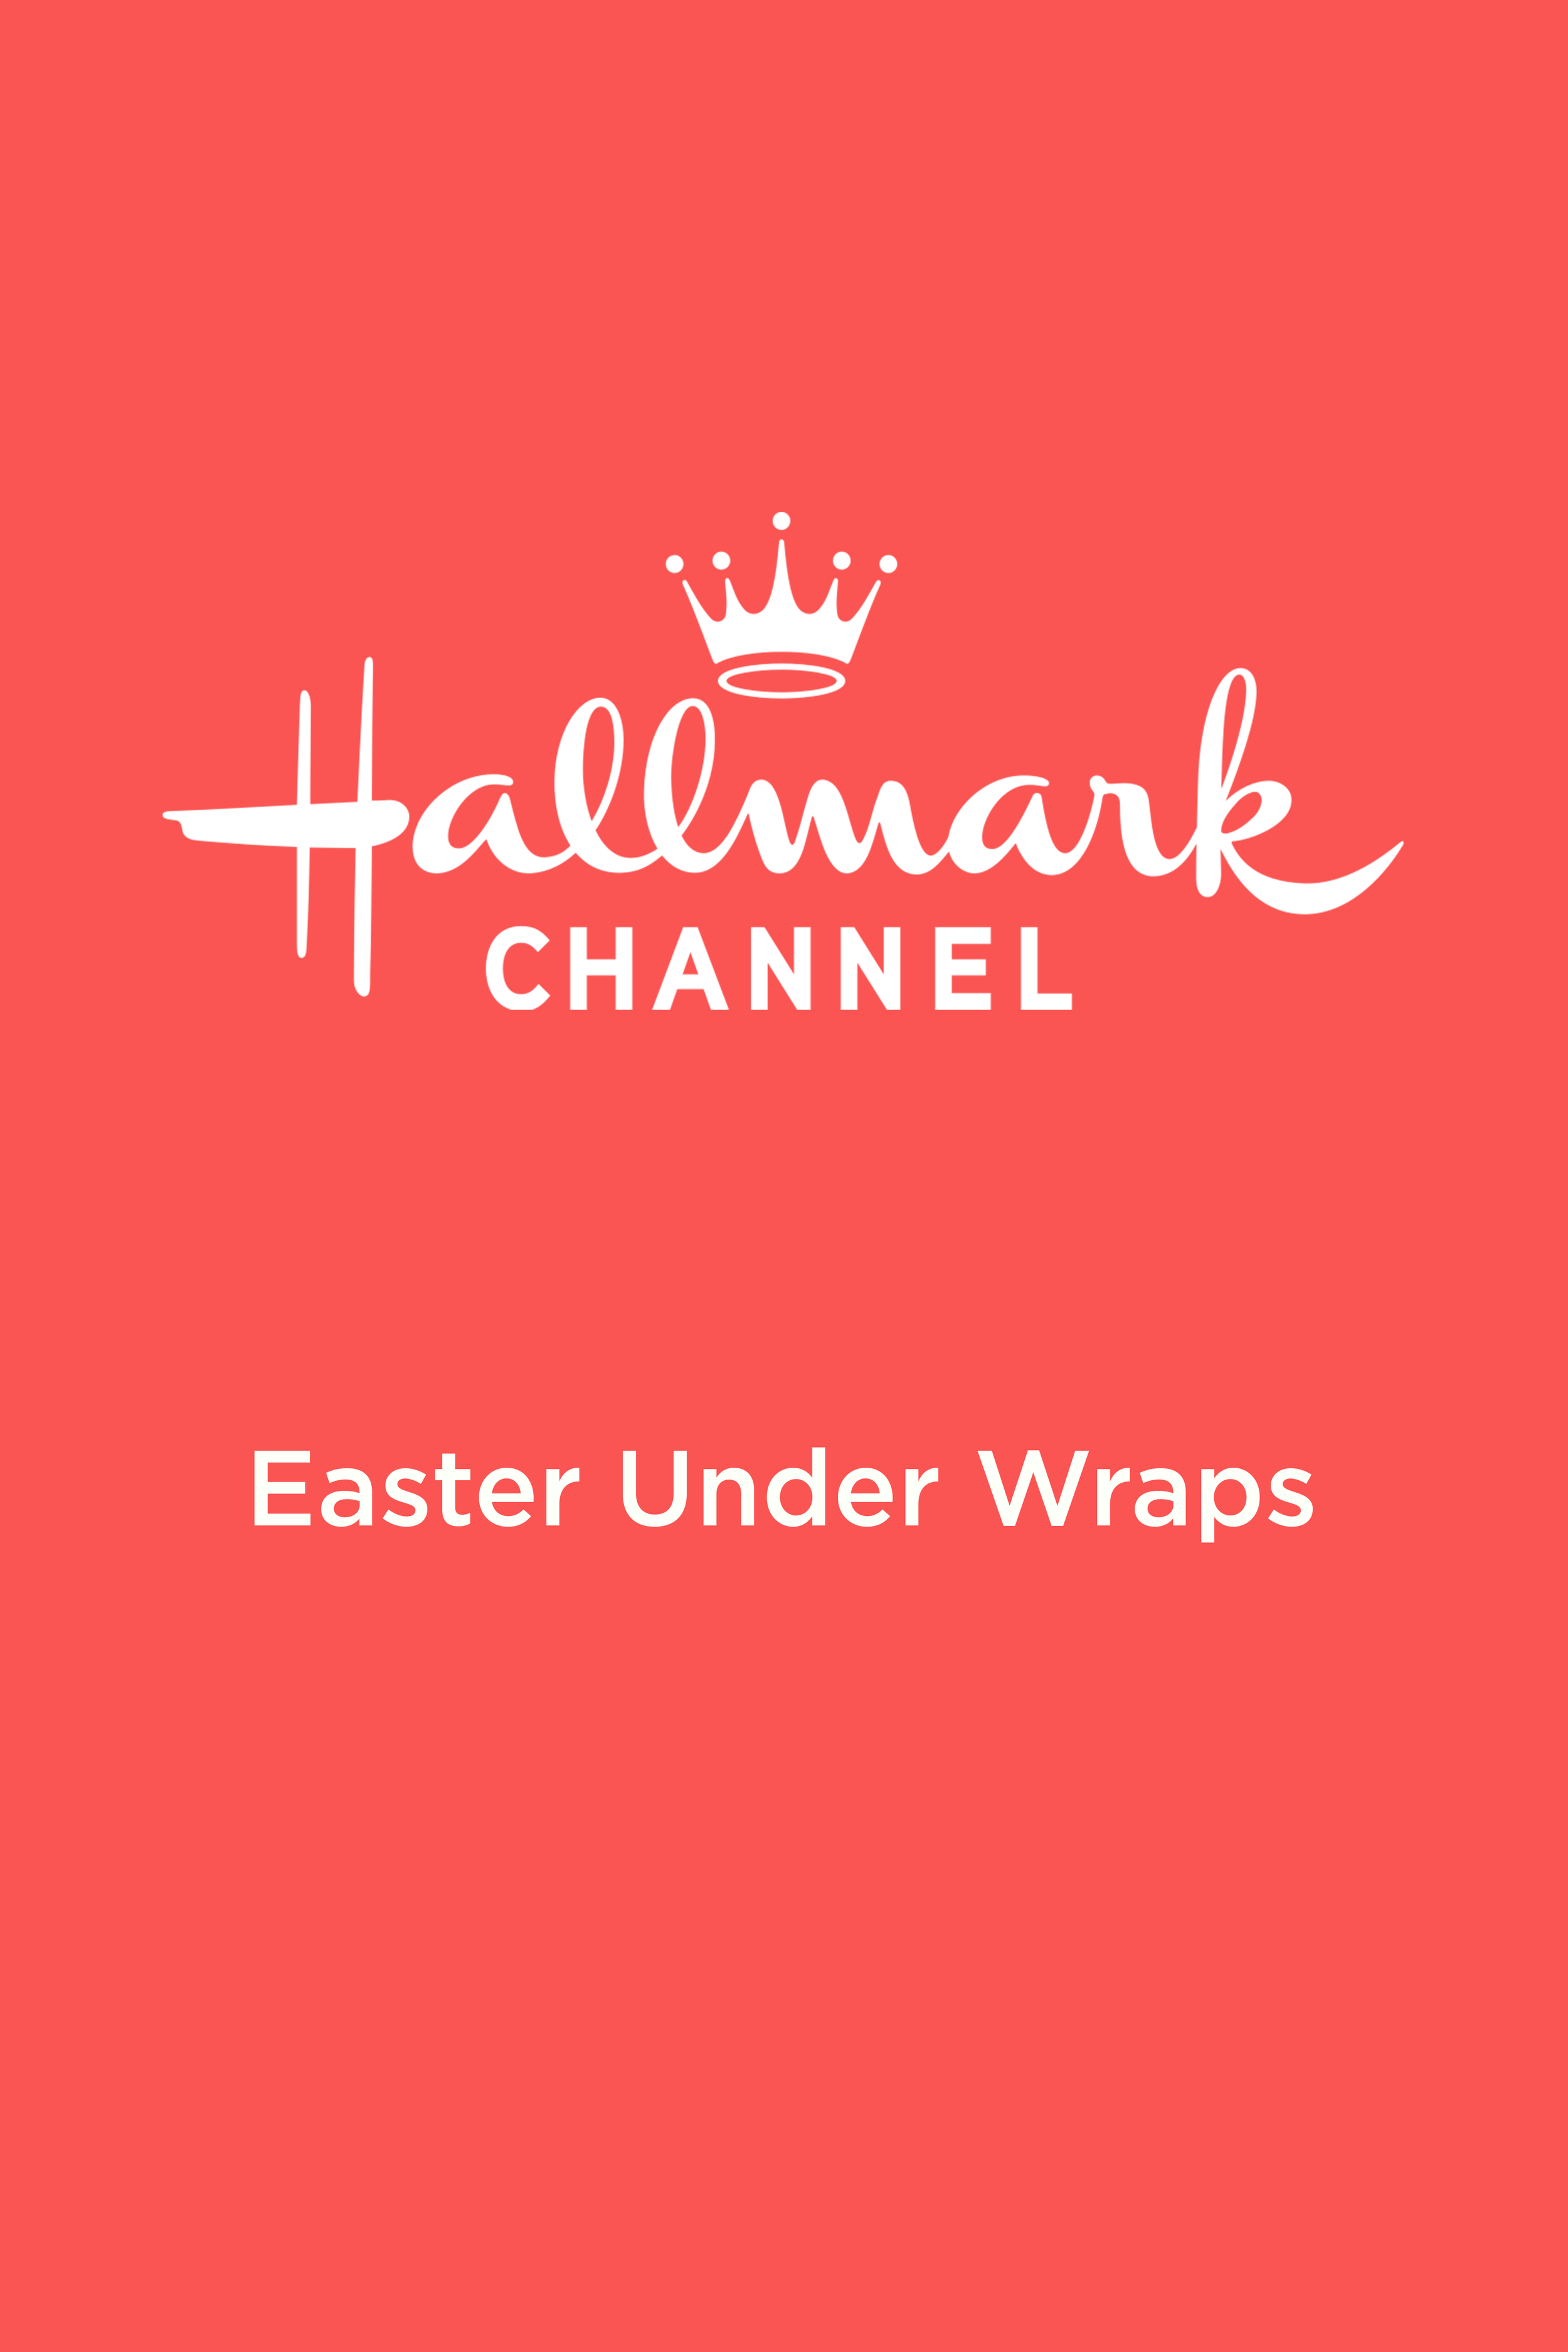 Easter Under Wraps.png